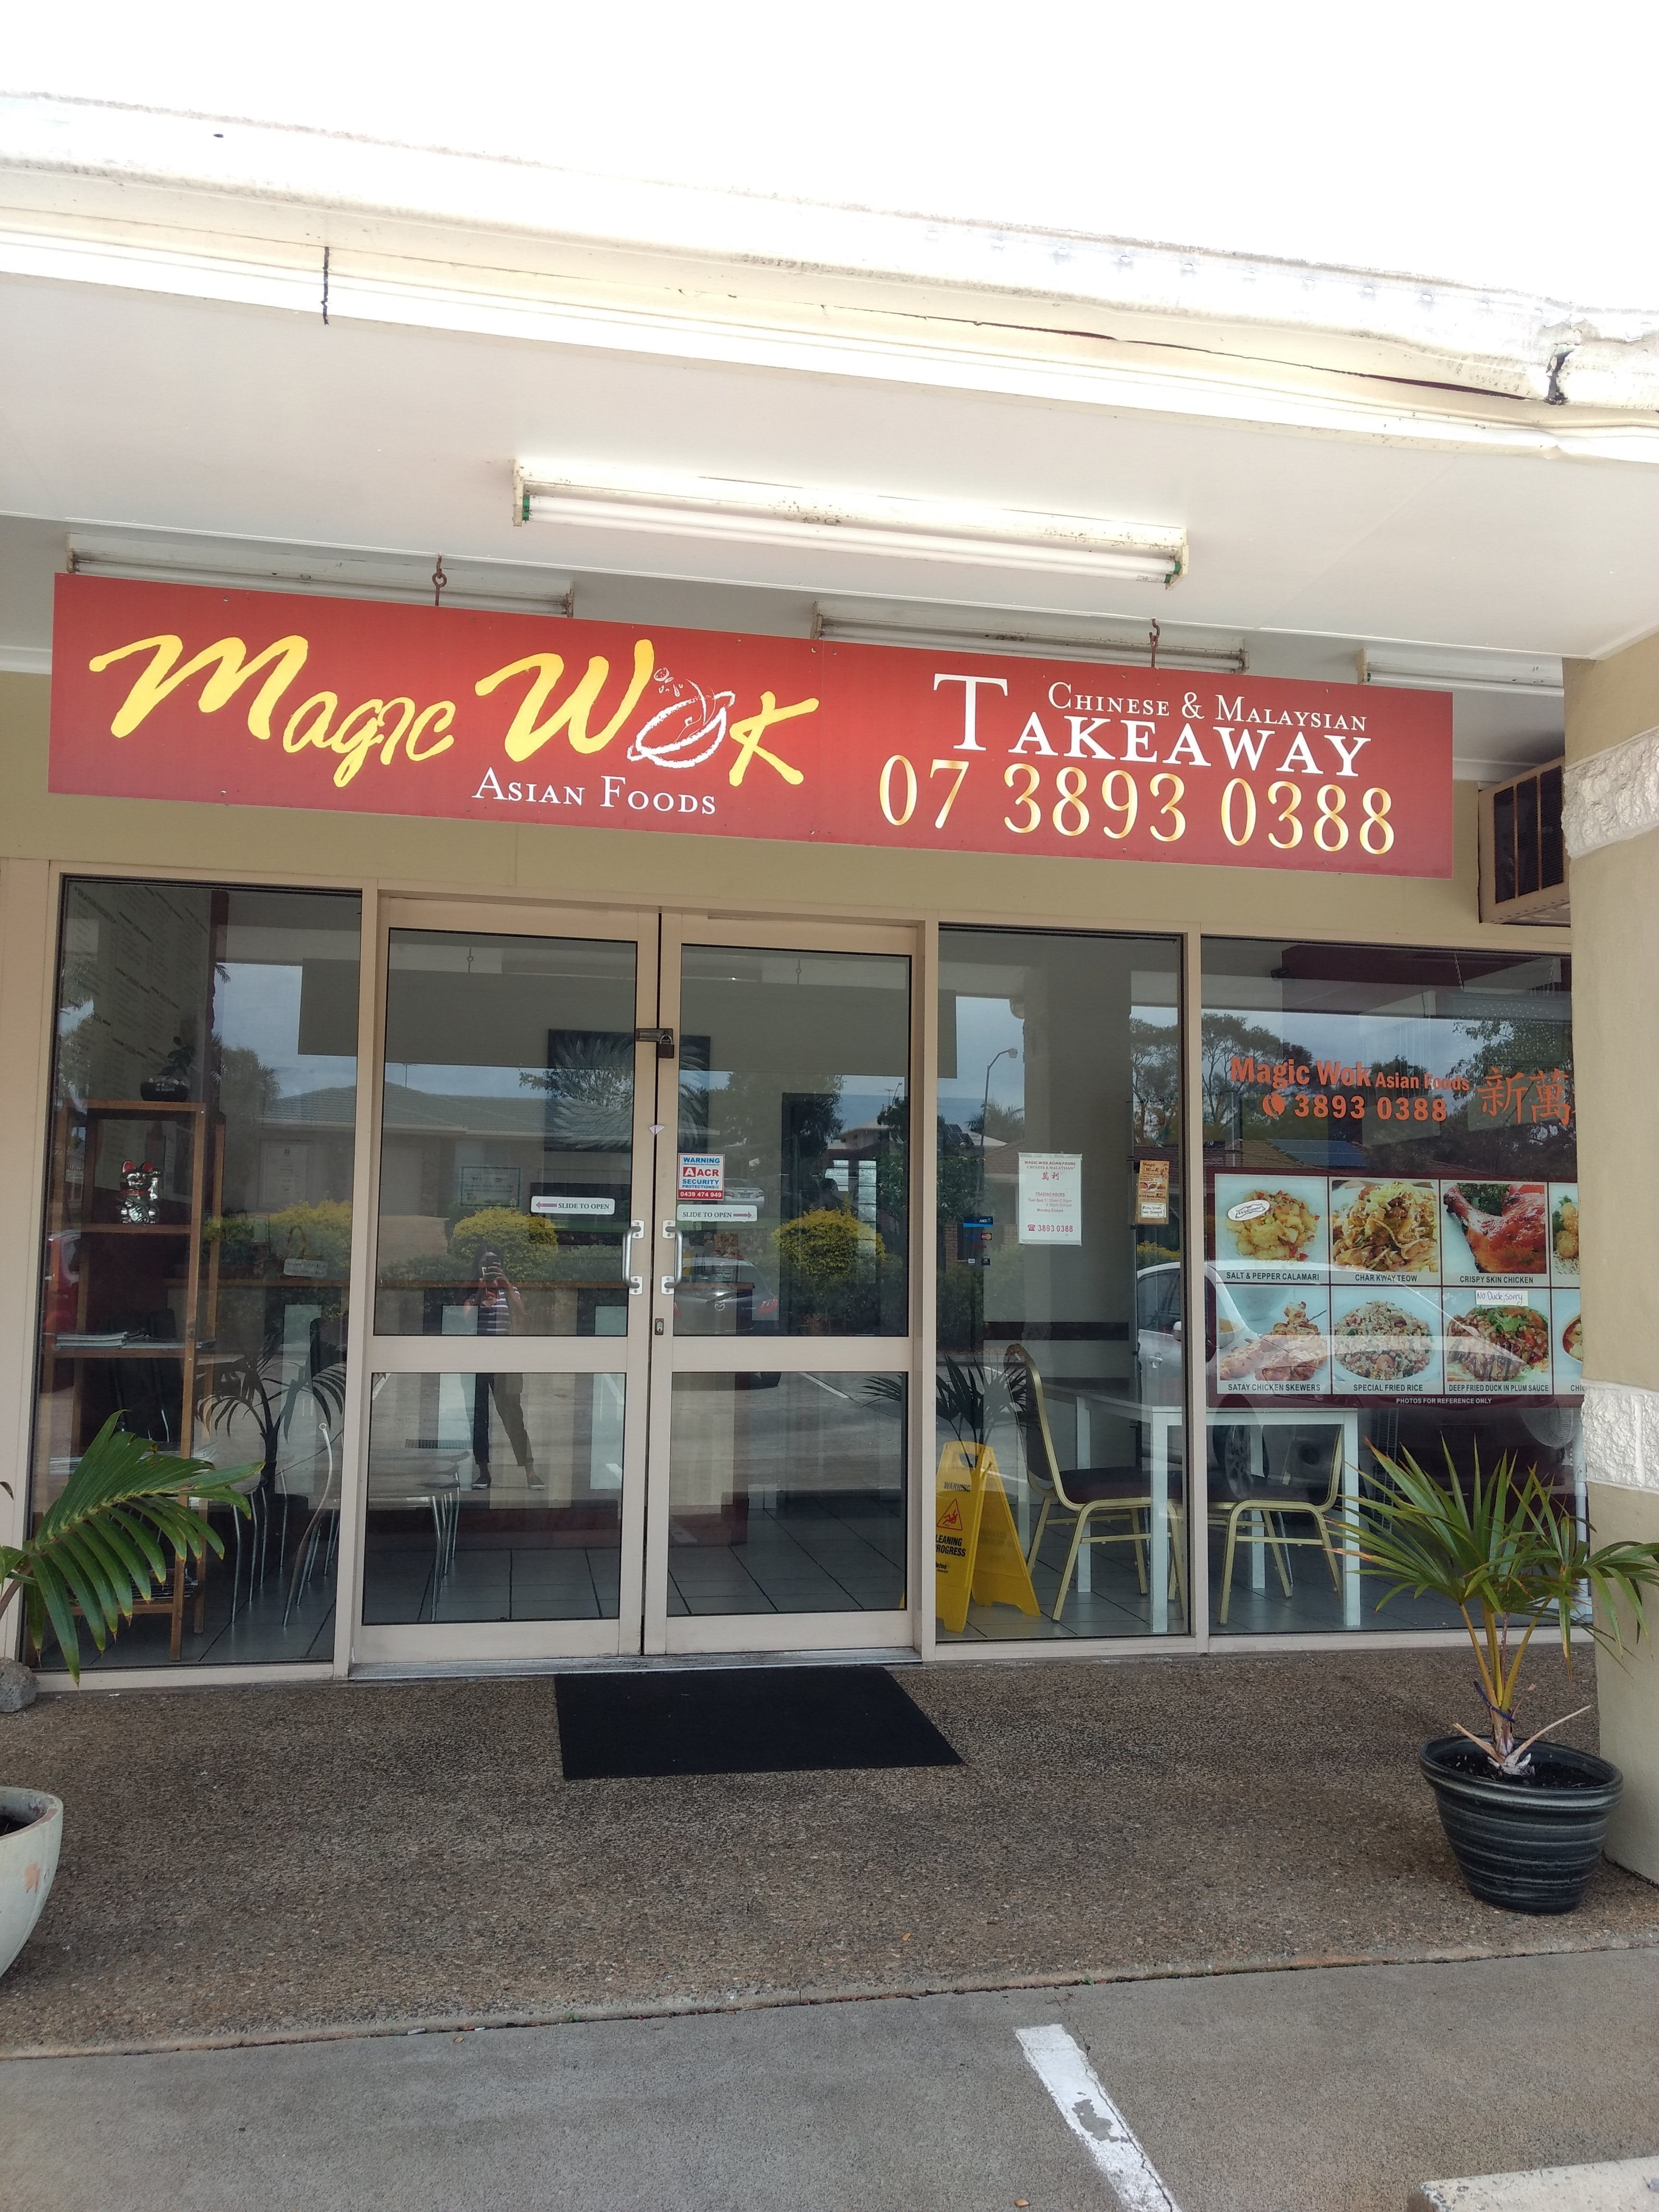 Magic Wok Asian Foods - Food Delivery Shop